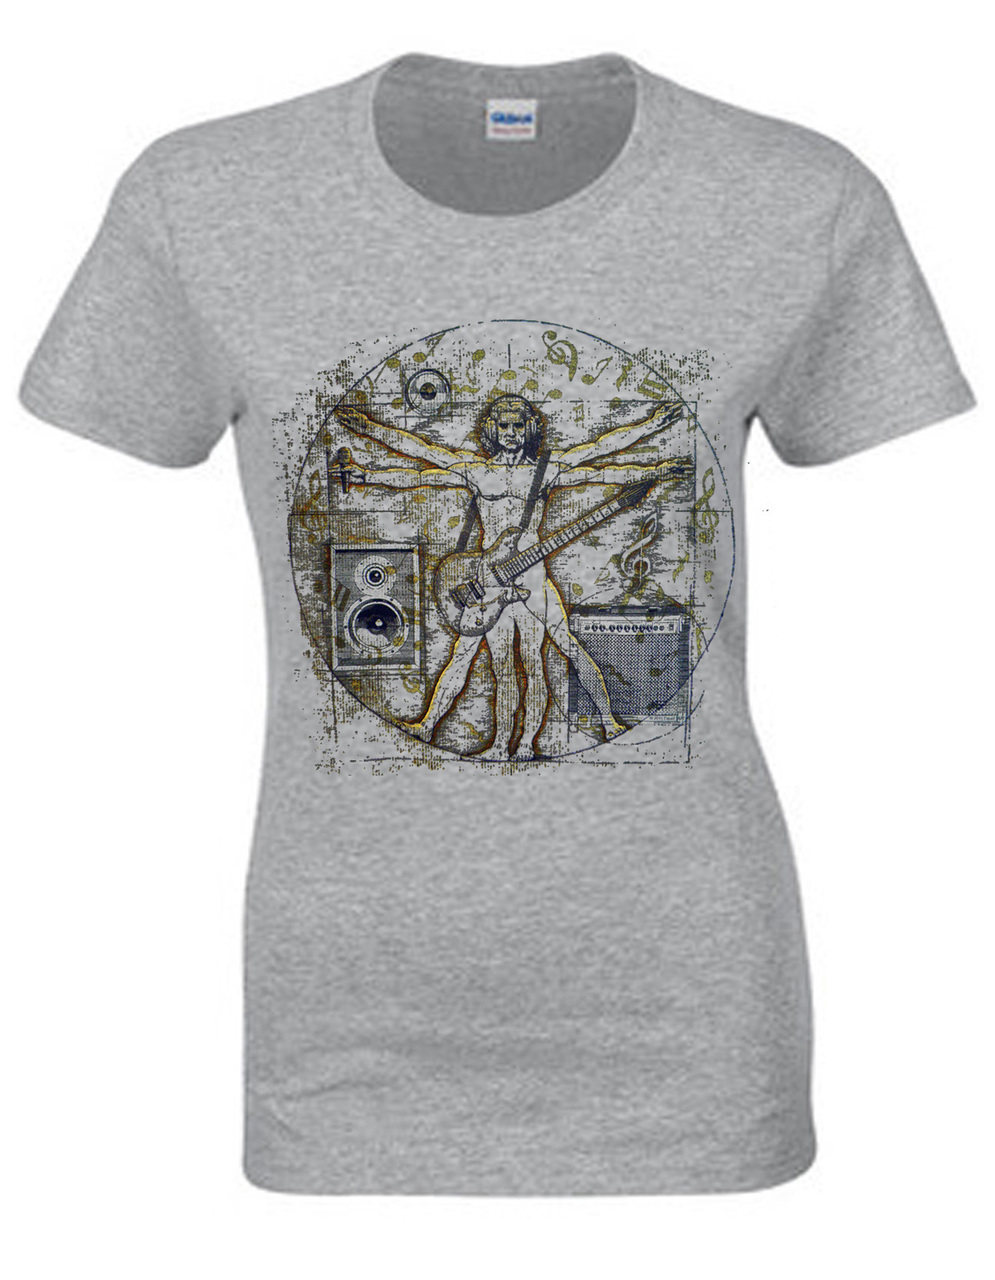 Davinci Rocker Women's Short Sleeve T-Shirt